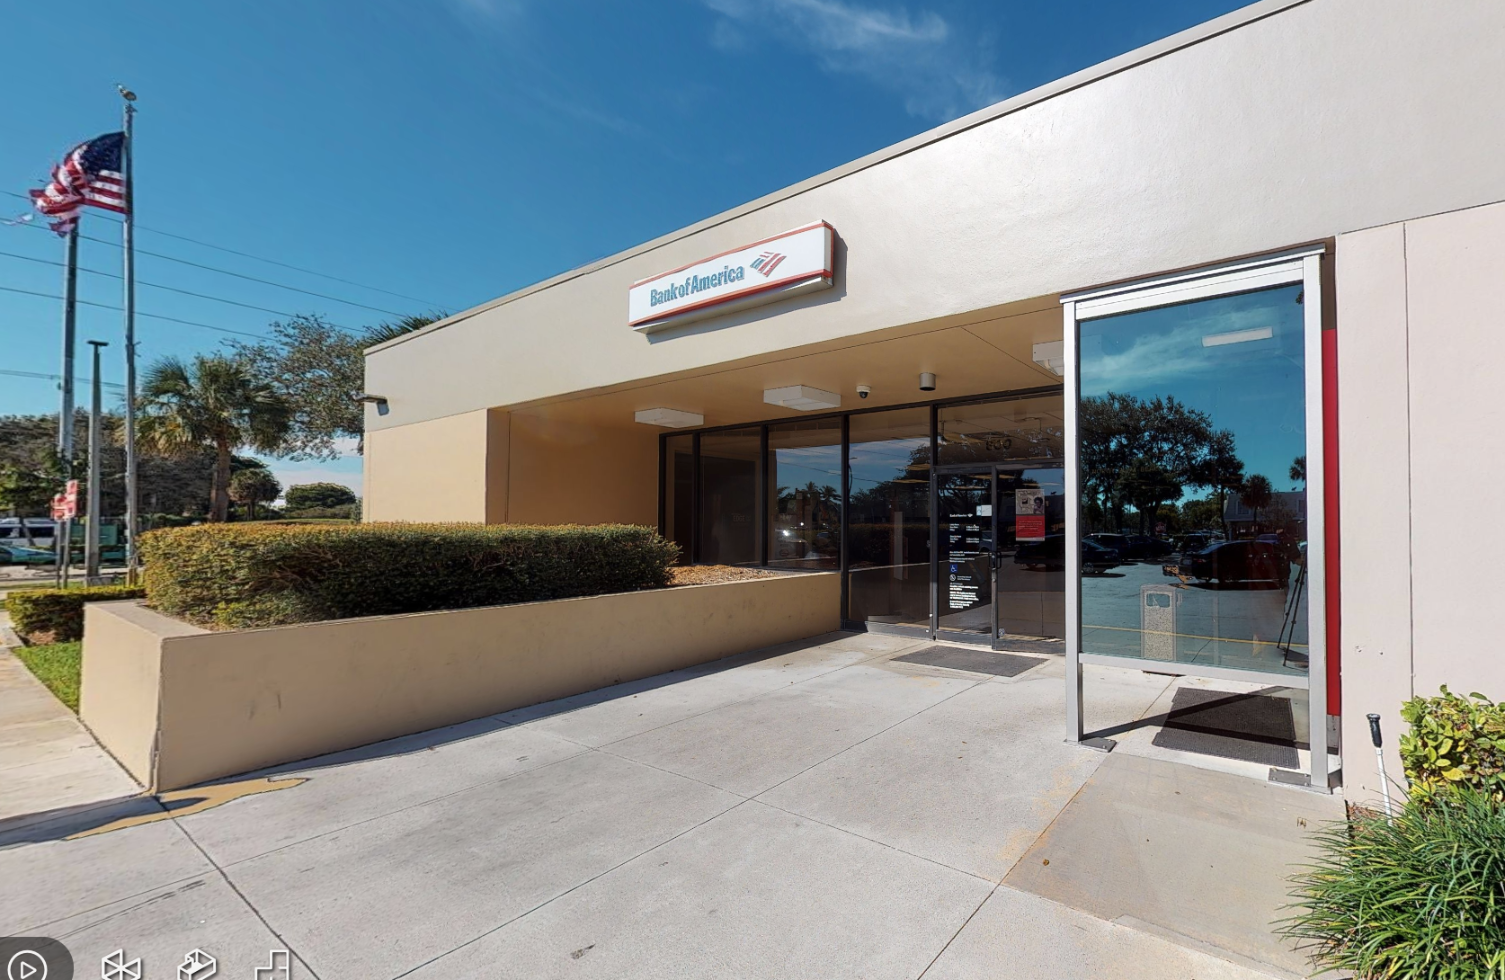 Bank of America financial center with drive-thru ATM | 800 US Highway 1, North Palm Beach, FL 33408